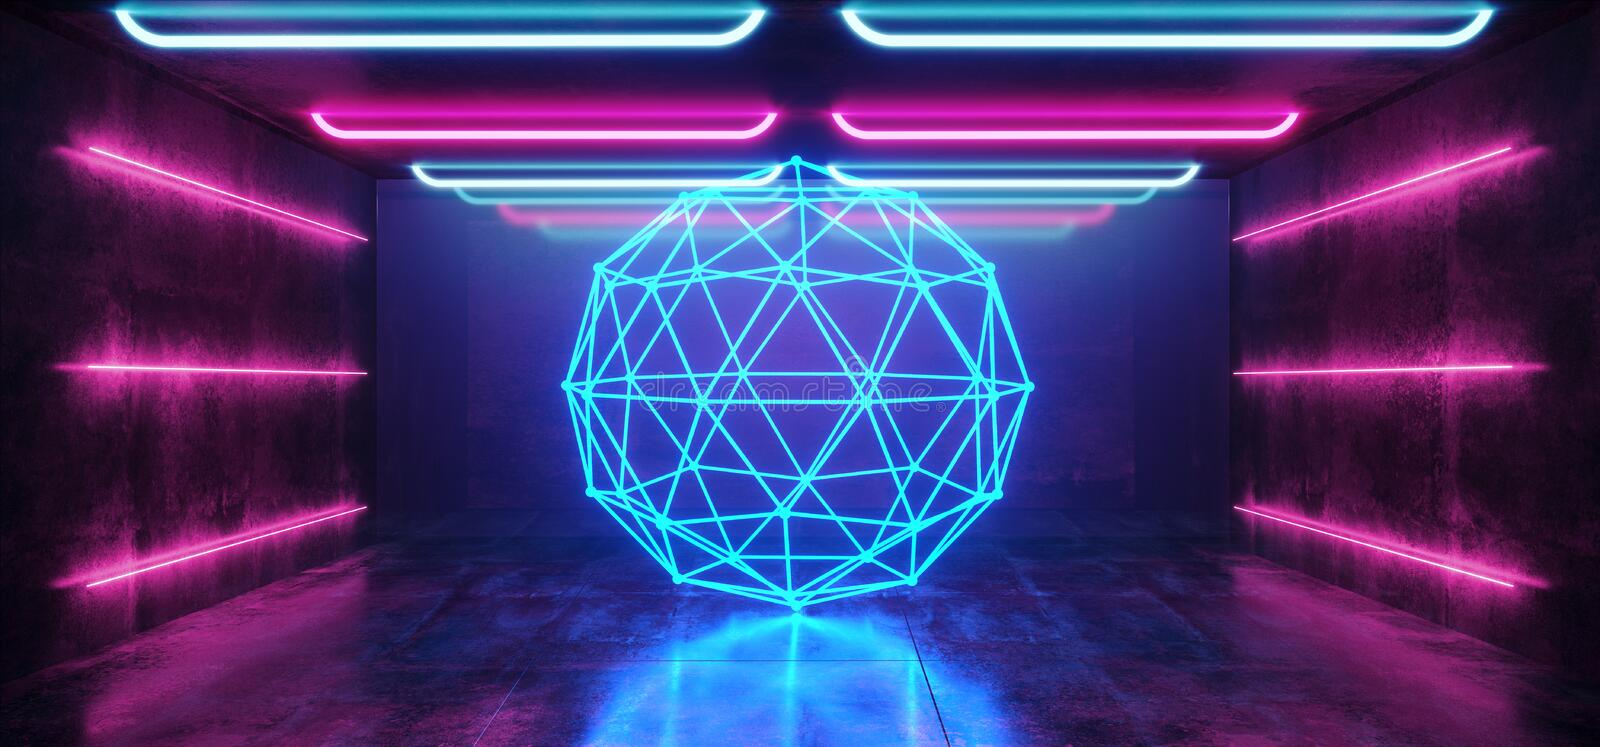 Abstract Sphere Laser Background Neon Retro Futuristic Sci Fi Modern Spaceship Glossy Spectrum Purple Blue Vibrant Pink Rainbow vector illustration